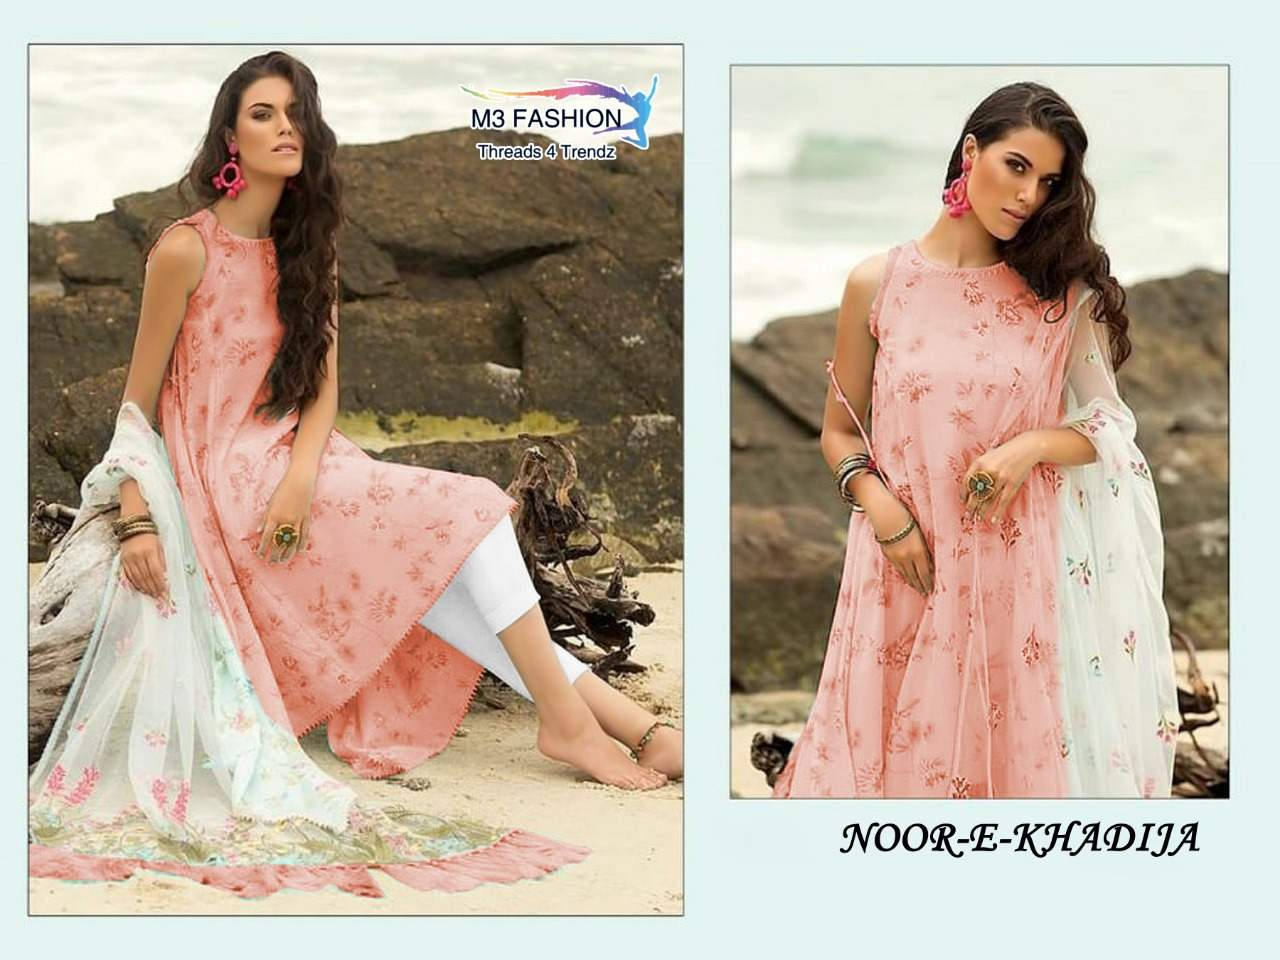 M3 Fashion Noor E Khadija collection 1